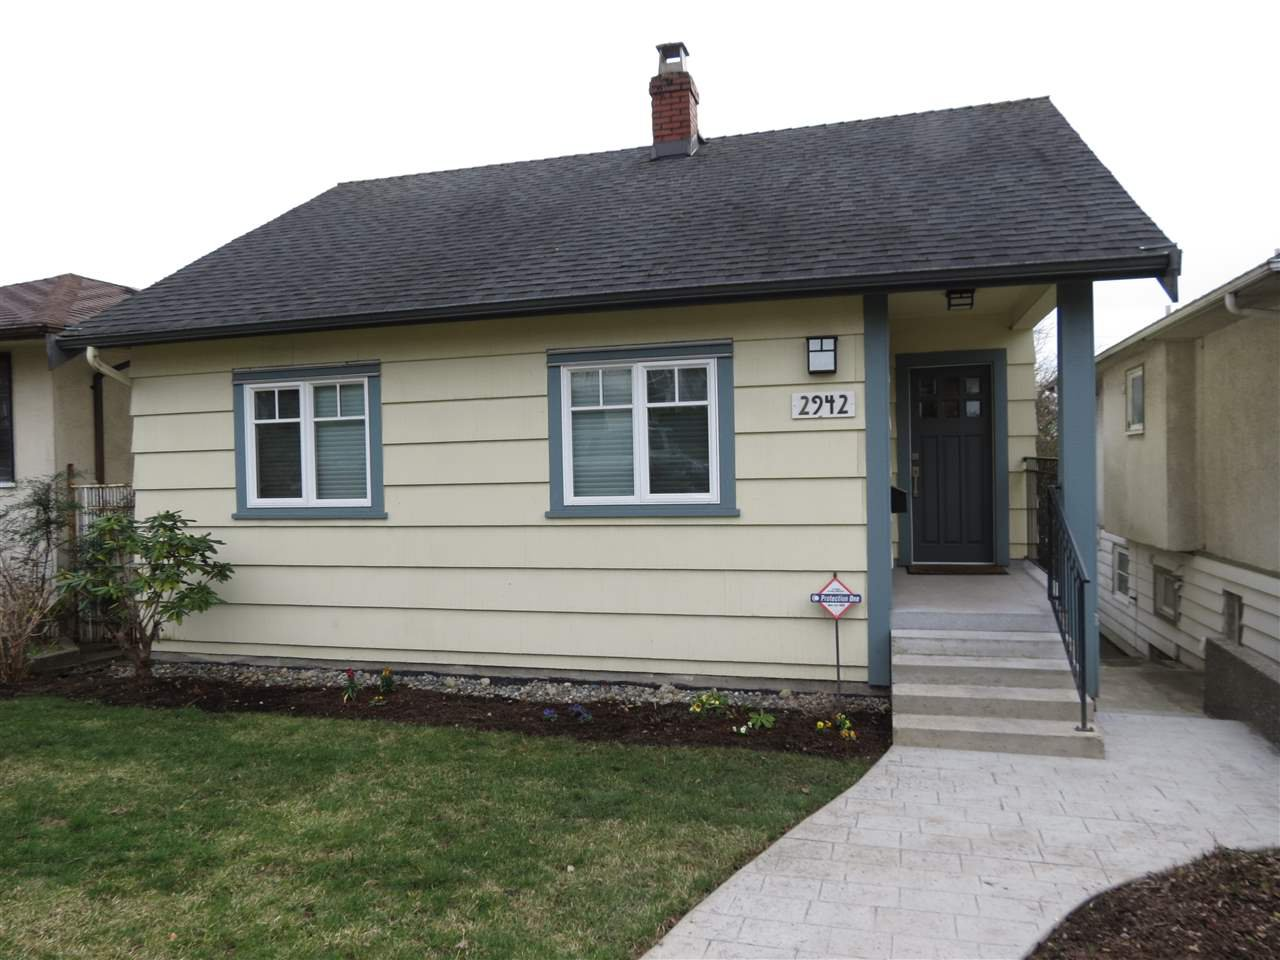 Main Photo: 2942 E 7TH Avenue in Vancouver: Renfrew VE House for sale (Vancouver East)  : MLS®# R2248830